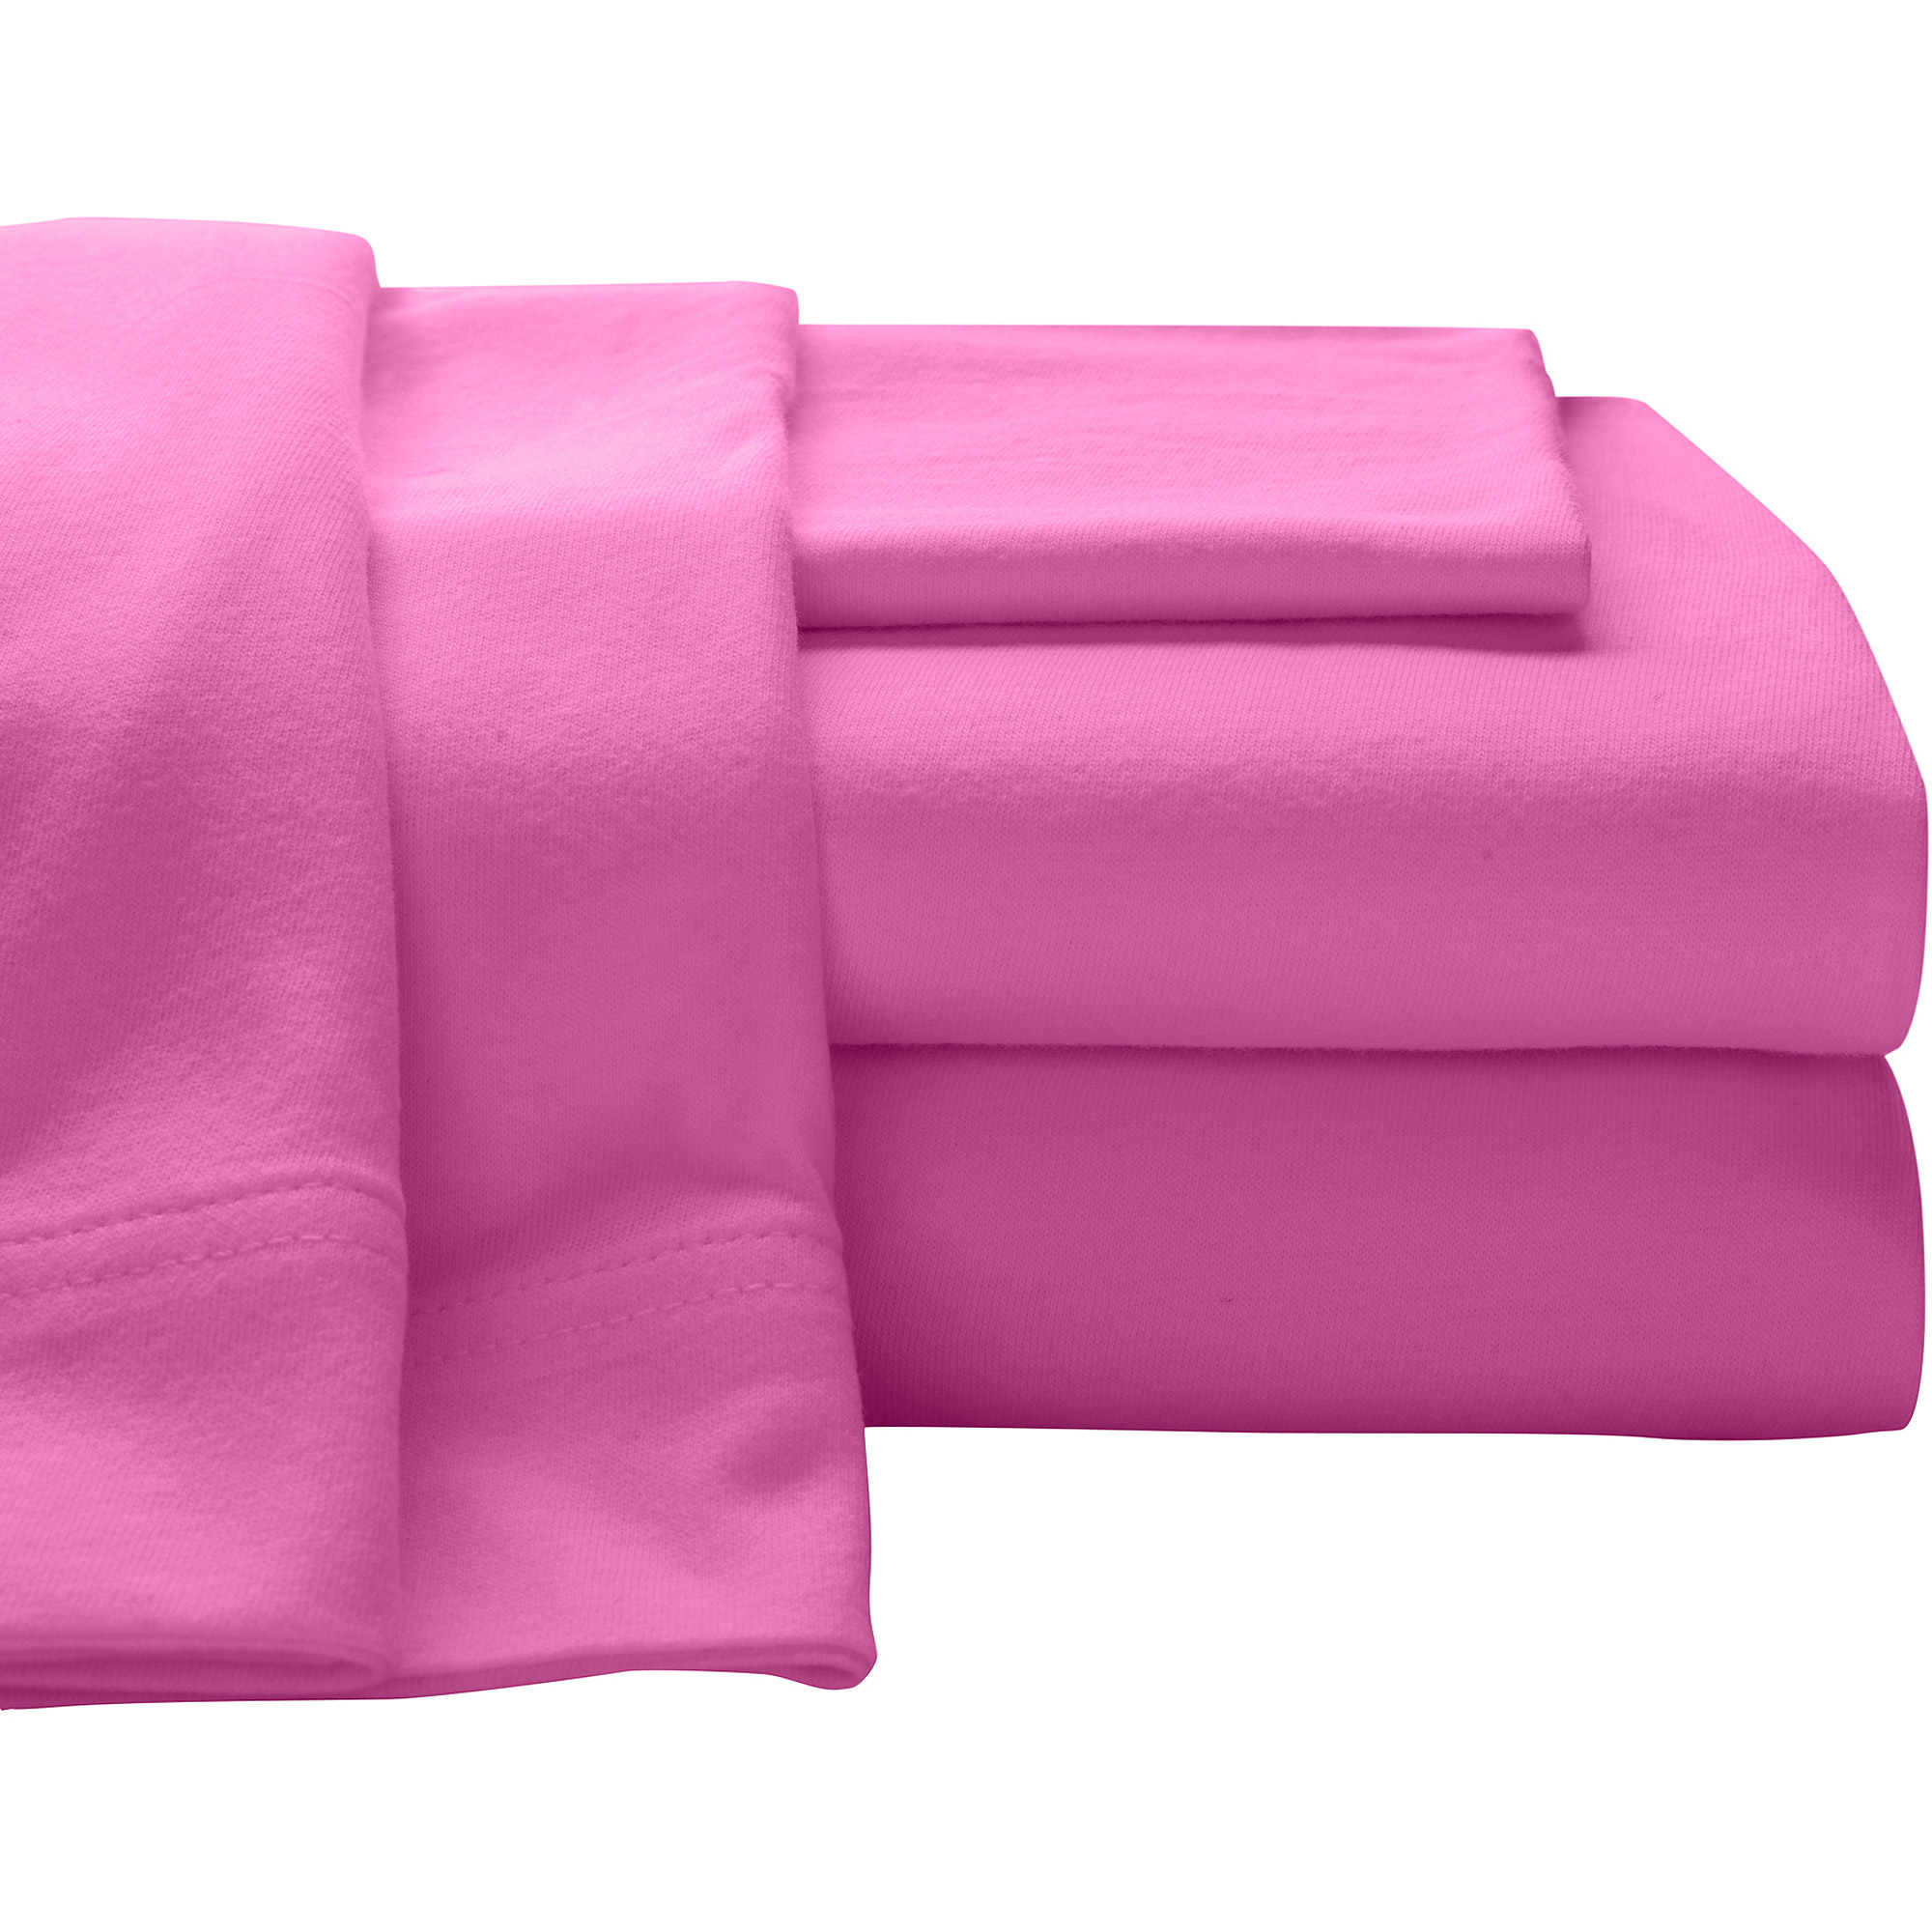 Super Soft 100% Cotton Jersey Sheet Set